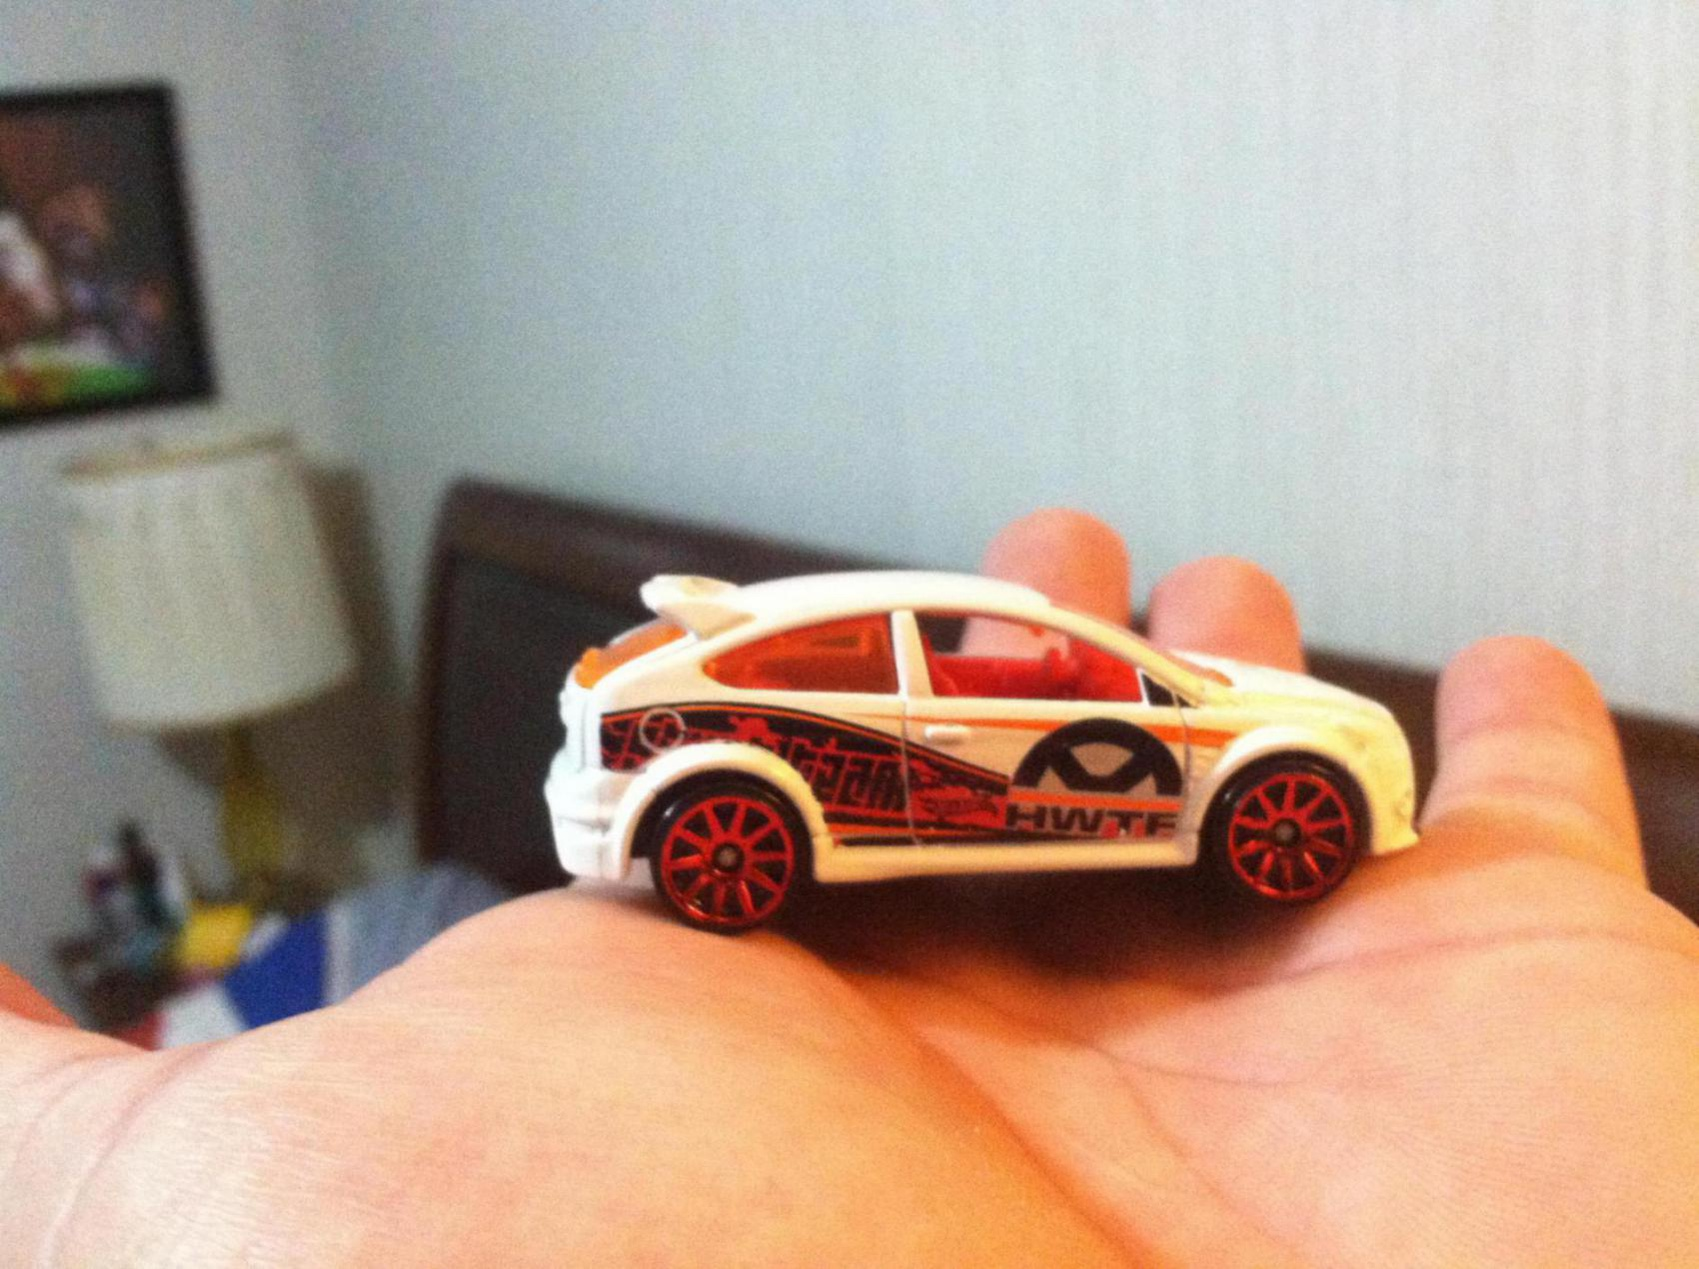 Any hotwheels collectors here?-image_1445012034970.jpg